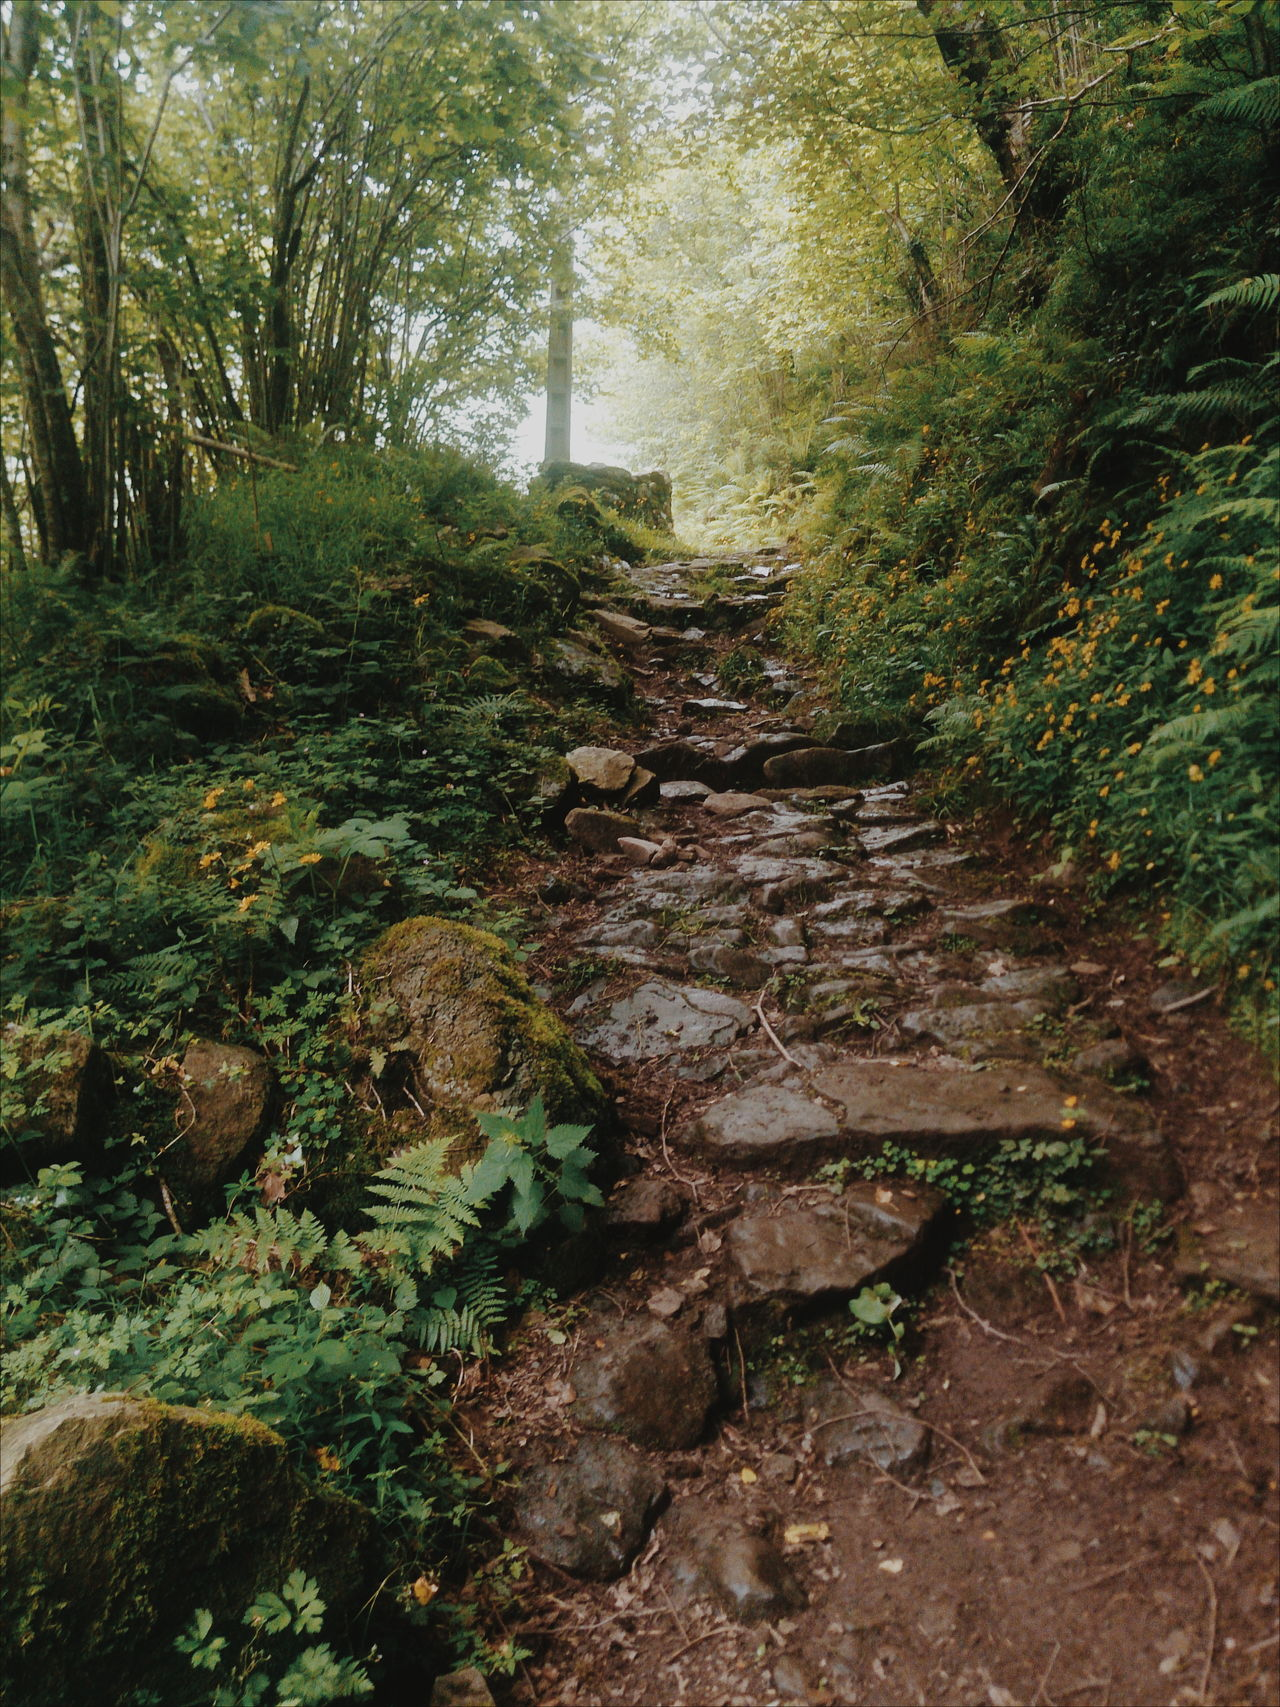 Forest Road Beauty In Nature Day Diminishing Perspective Footpath Forest Grass Green Color Growth Landscape Lush Foliage Moss Narrow Nature No People Non Urban Scene Non-urban Scene Outdoors Plant Rock - Object Scenics The Way Forward Tranquil Scene Tranquility Tree Walkway